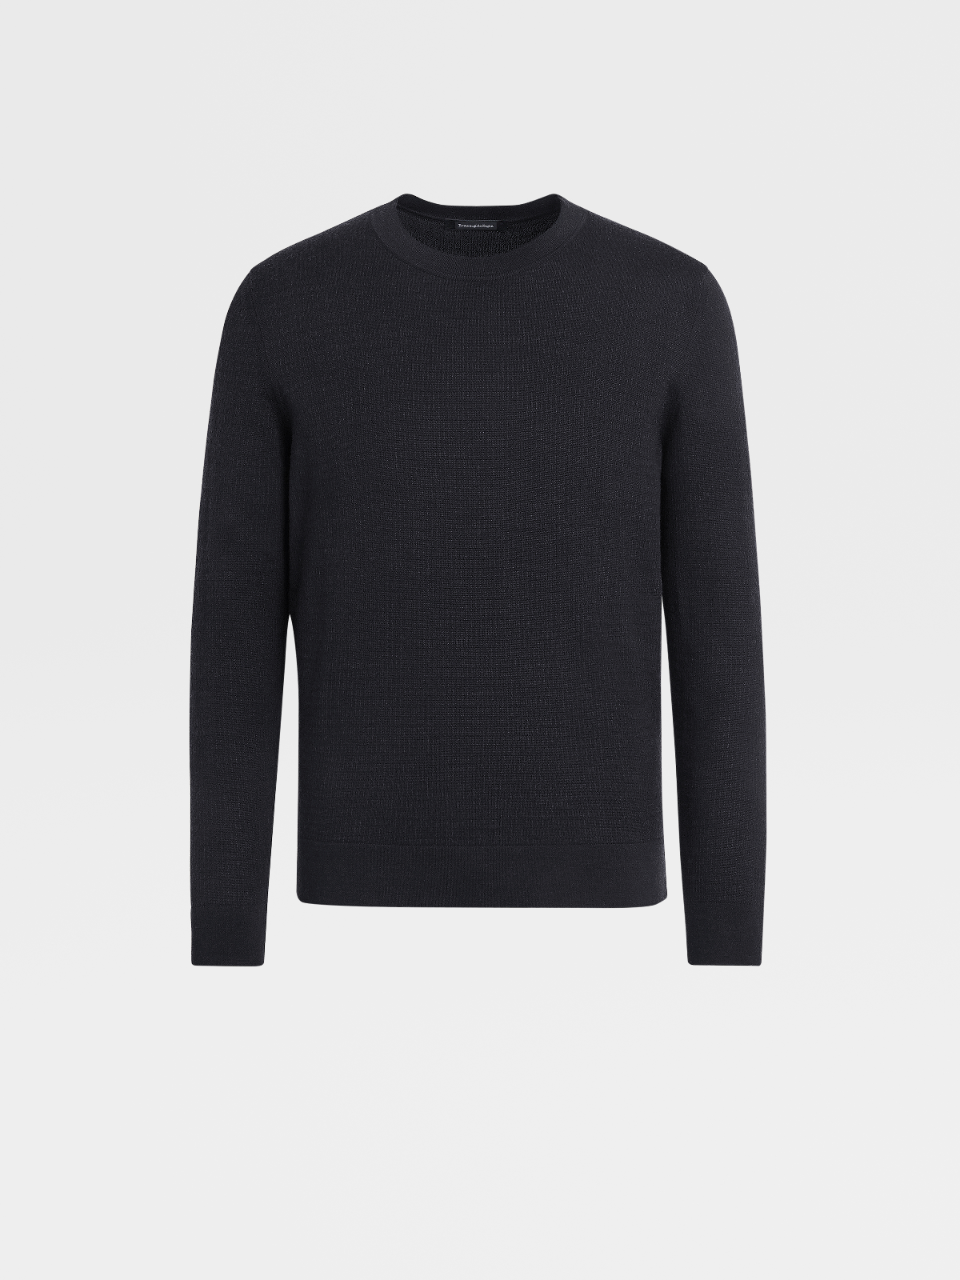 Wool Silk And Cashmere Knit Crewneck